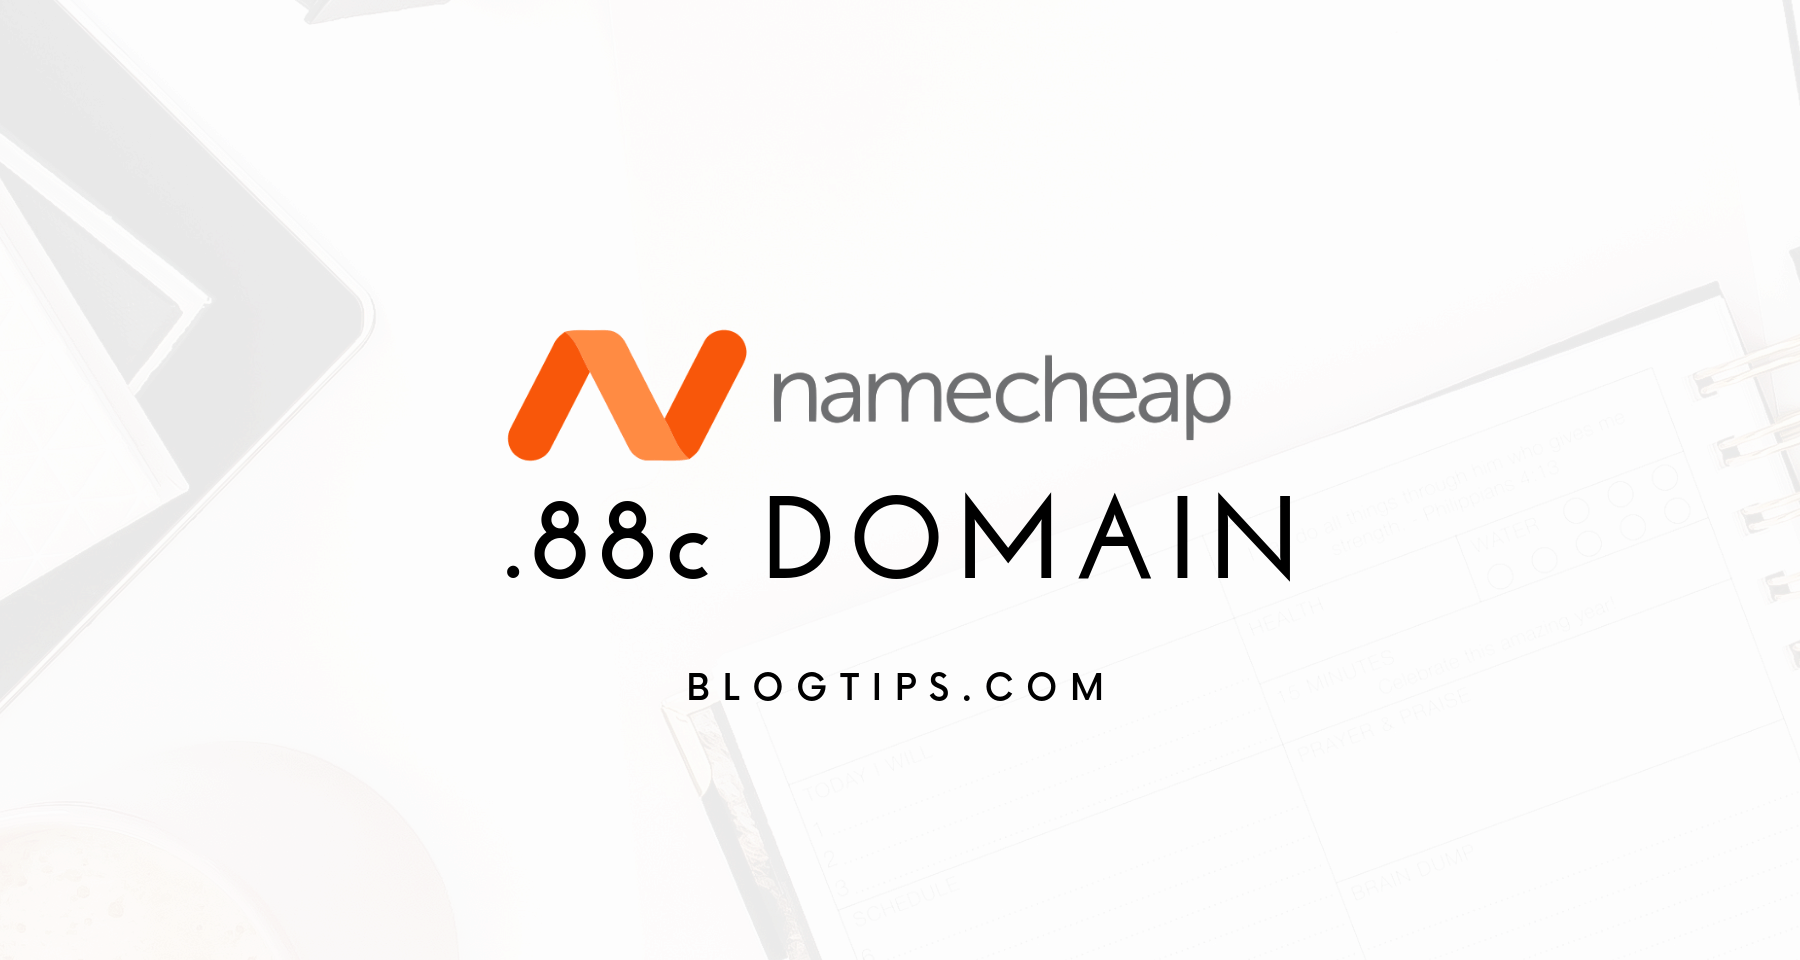 Namecheap coupon register domains for cheap domain tools blogtips.com